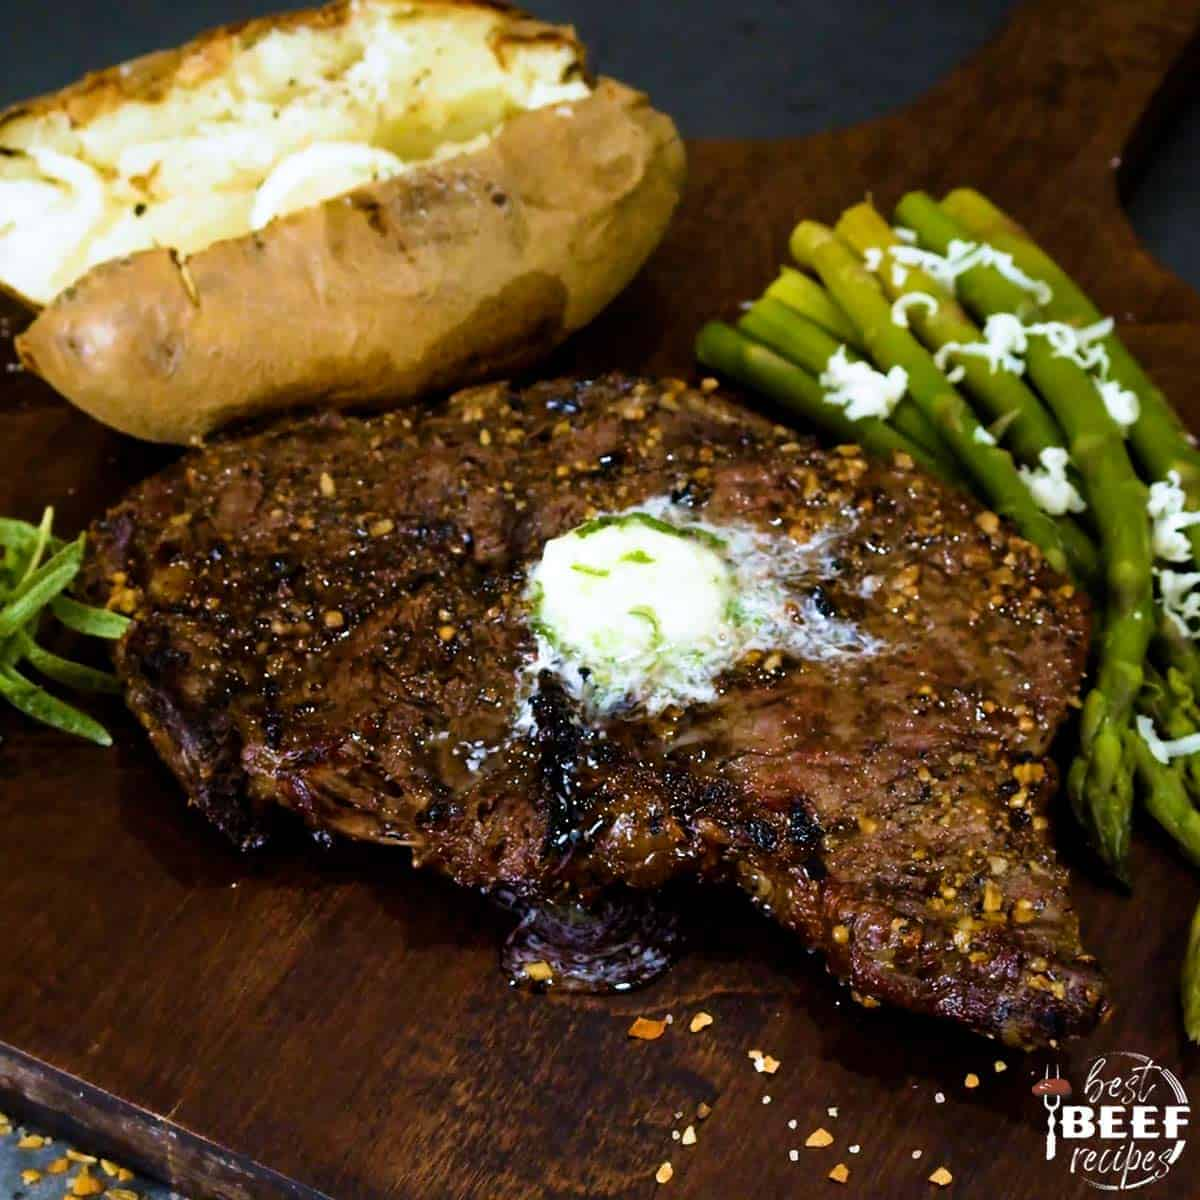 Grilled rib eye steak on a cutting board with asparagus and a baked potato